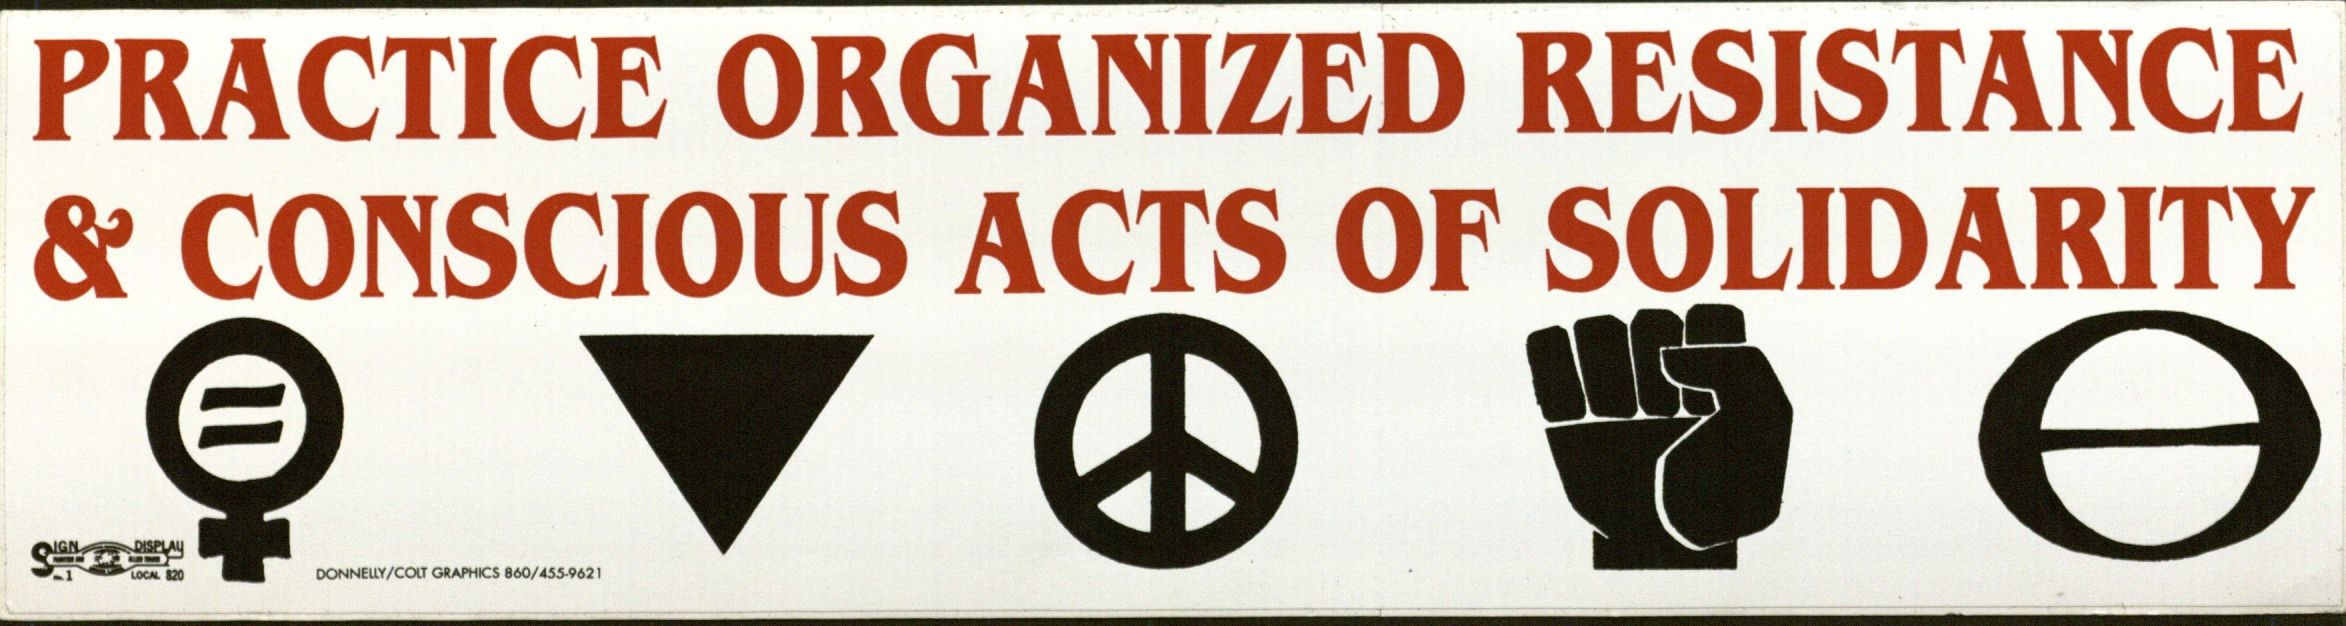 Bumper Sticker: Practice Organized Resistance and Conscious Acts of Solidarity